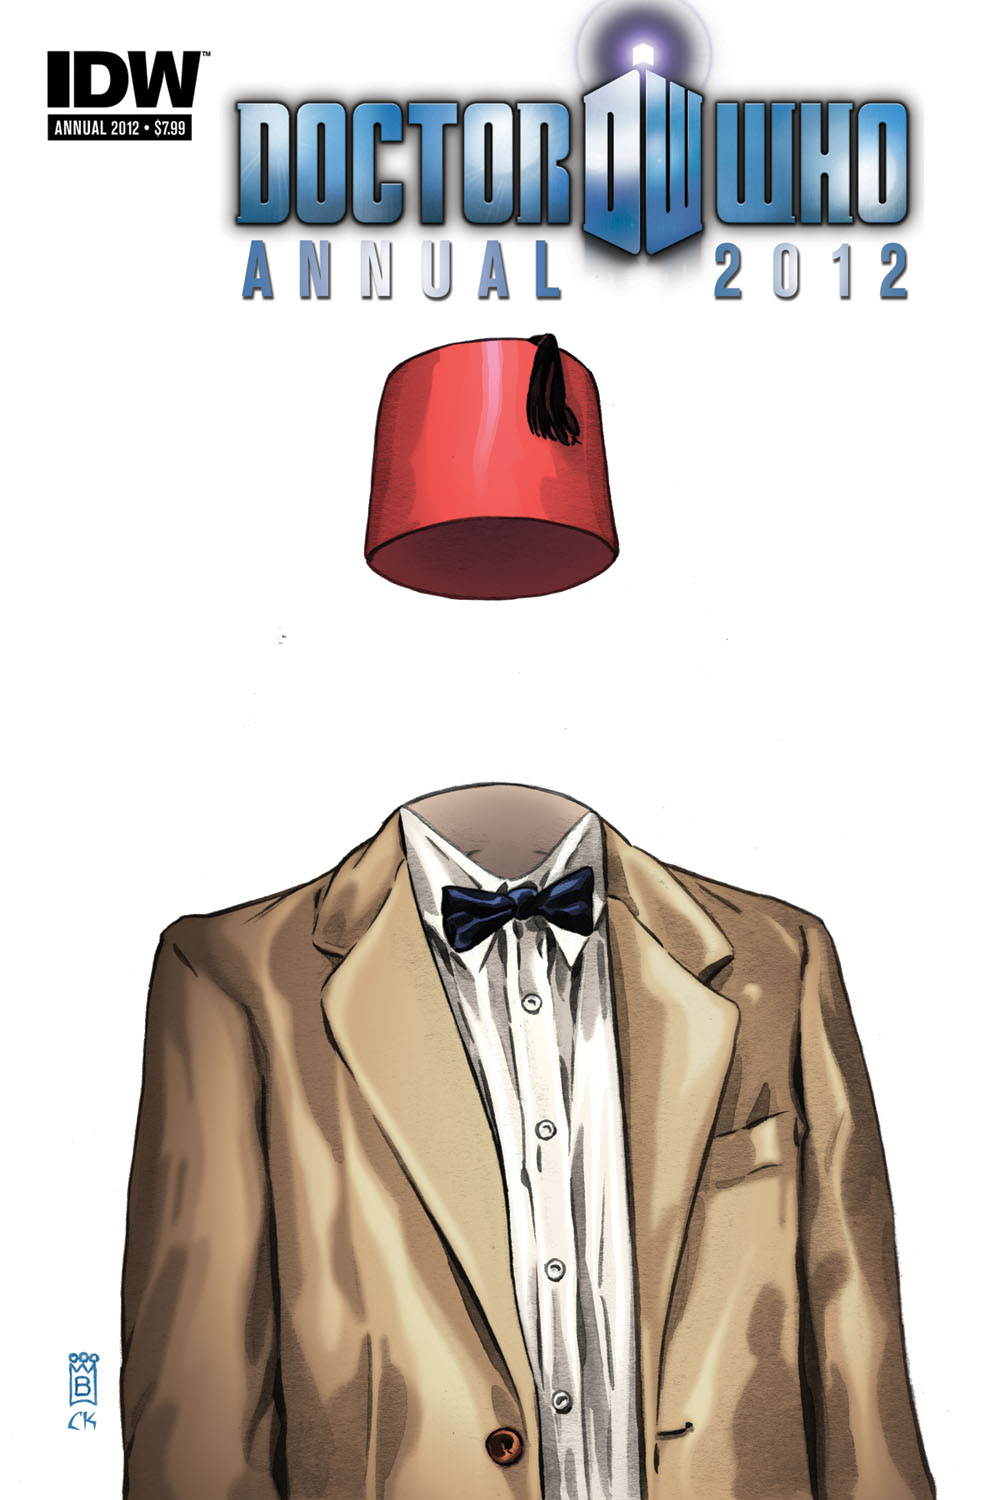 Doctor Who Annual 2012